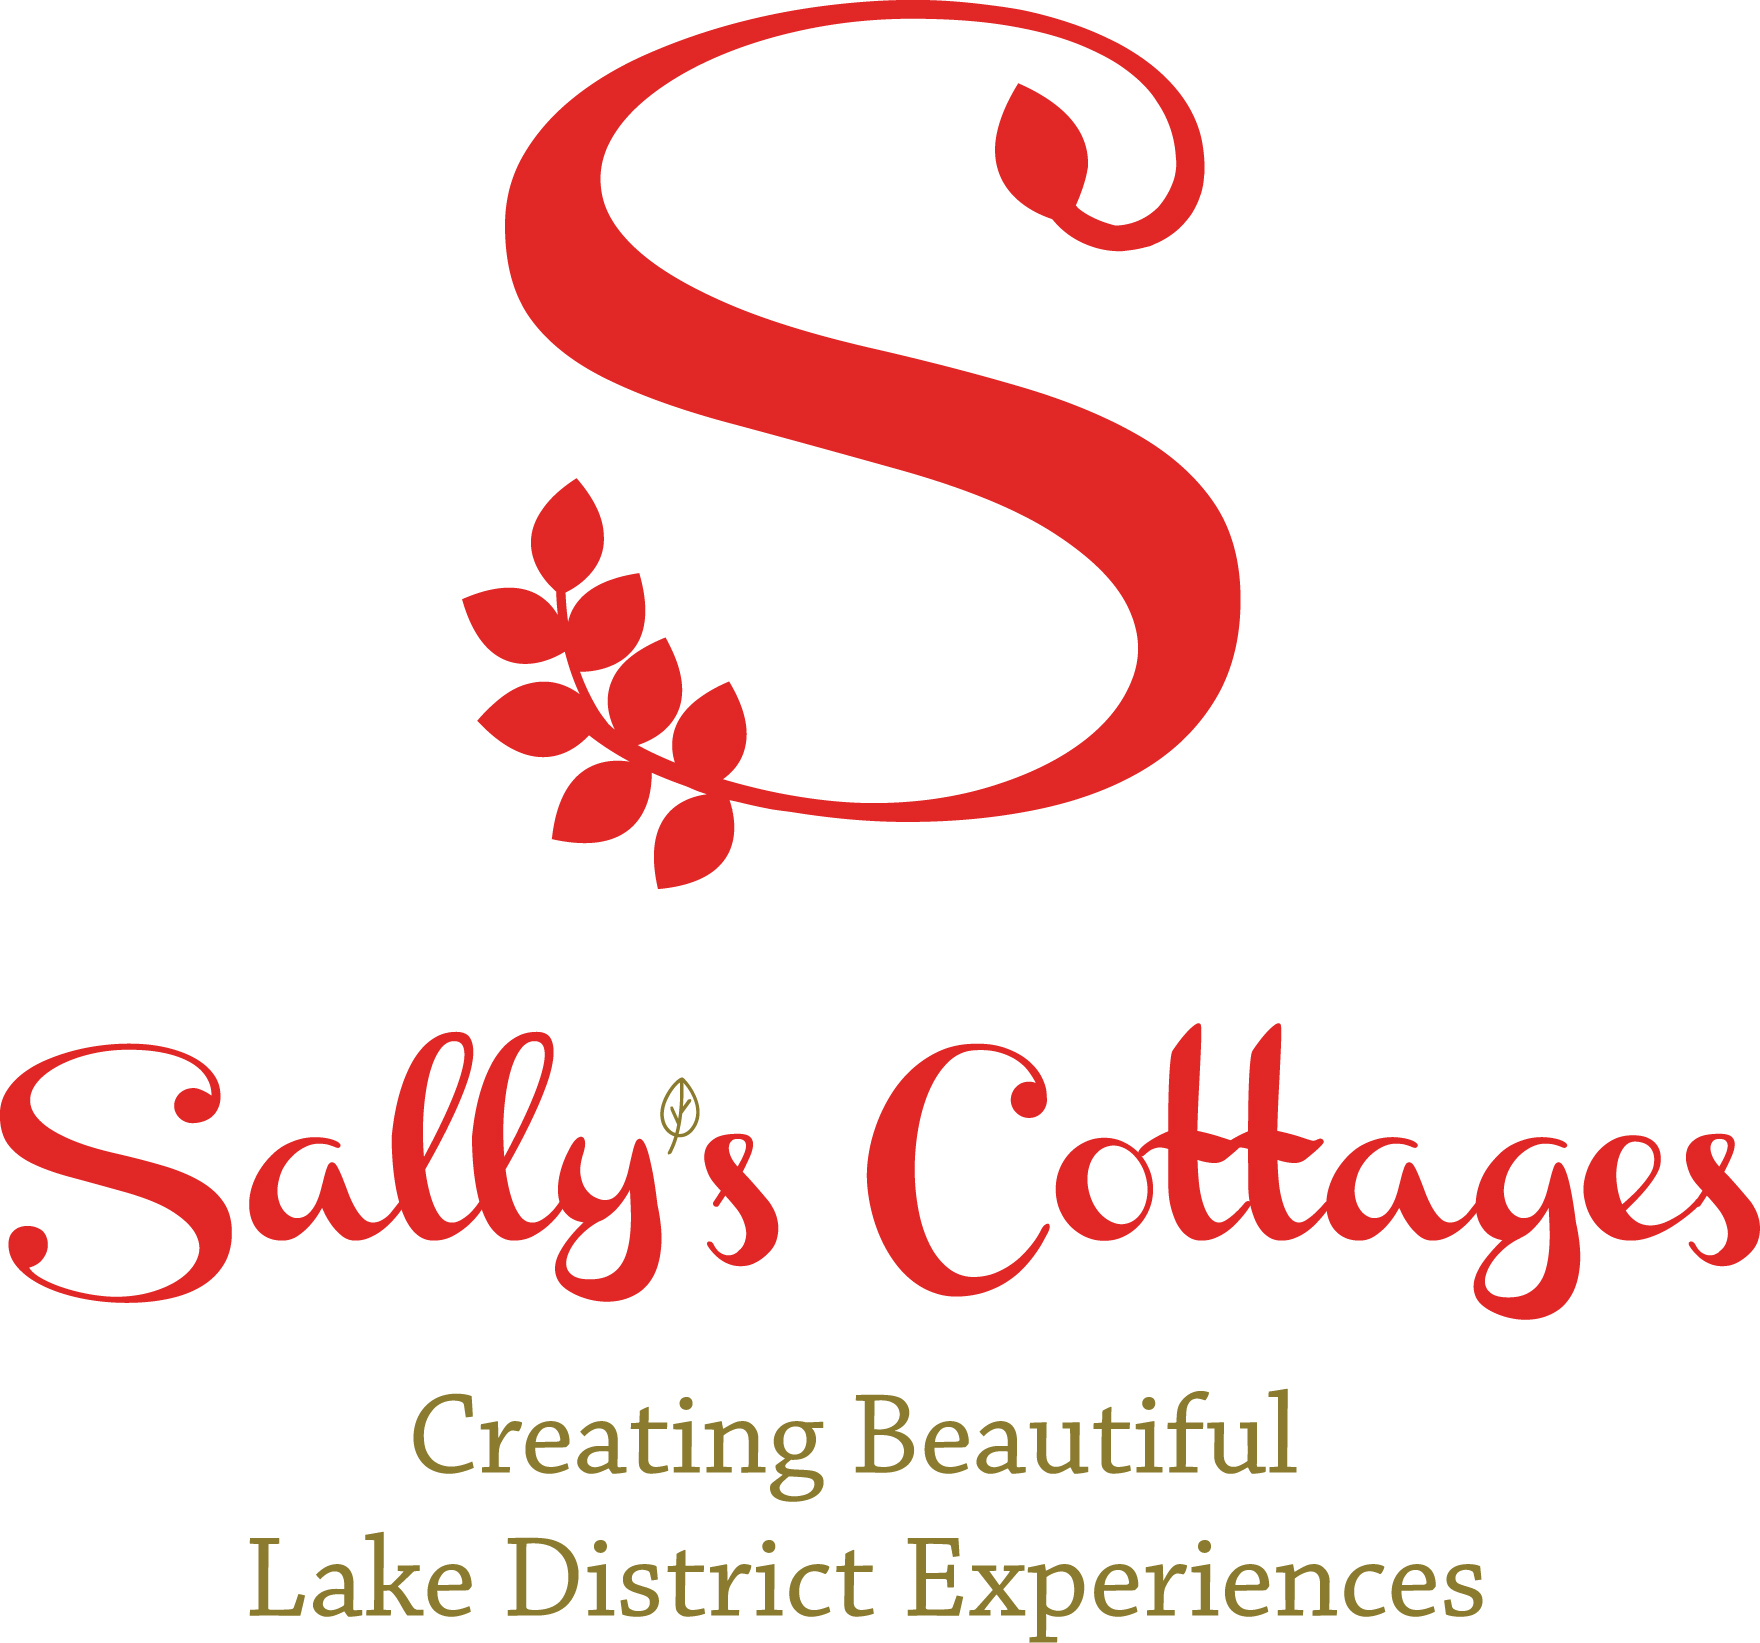 Sally's Cottages.jpg